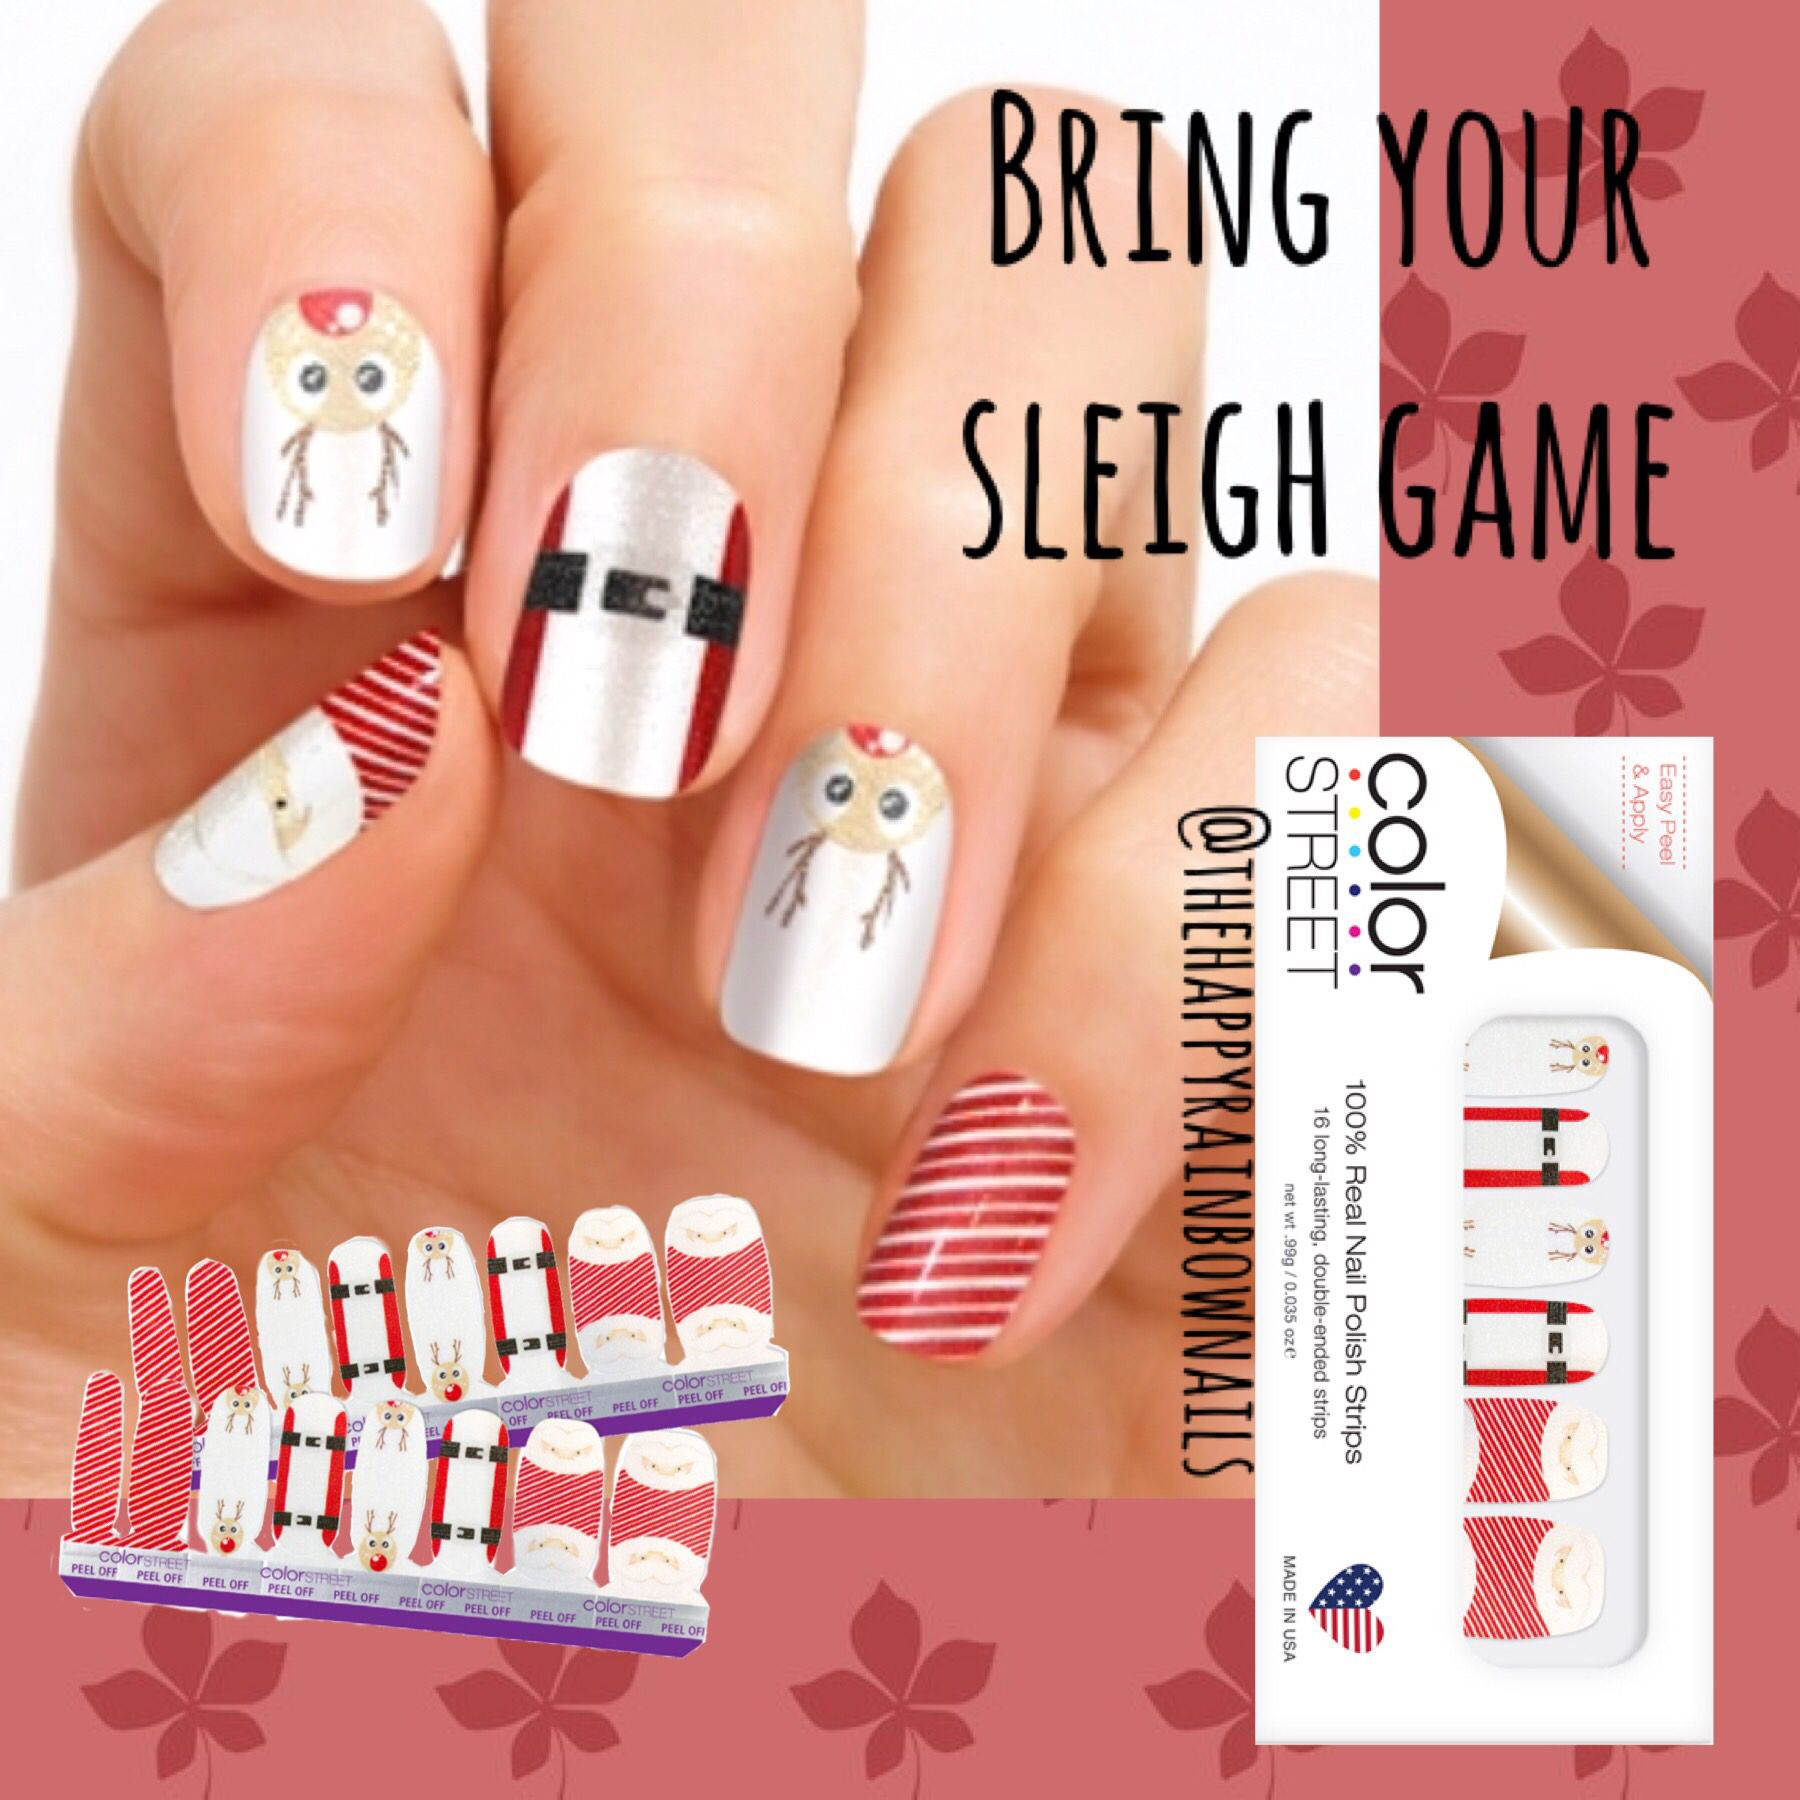 Color Street 100 Dry Nail Polish Strips Are The Fastest And Easiest